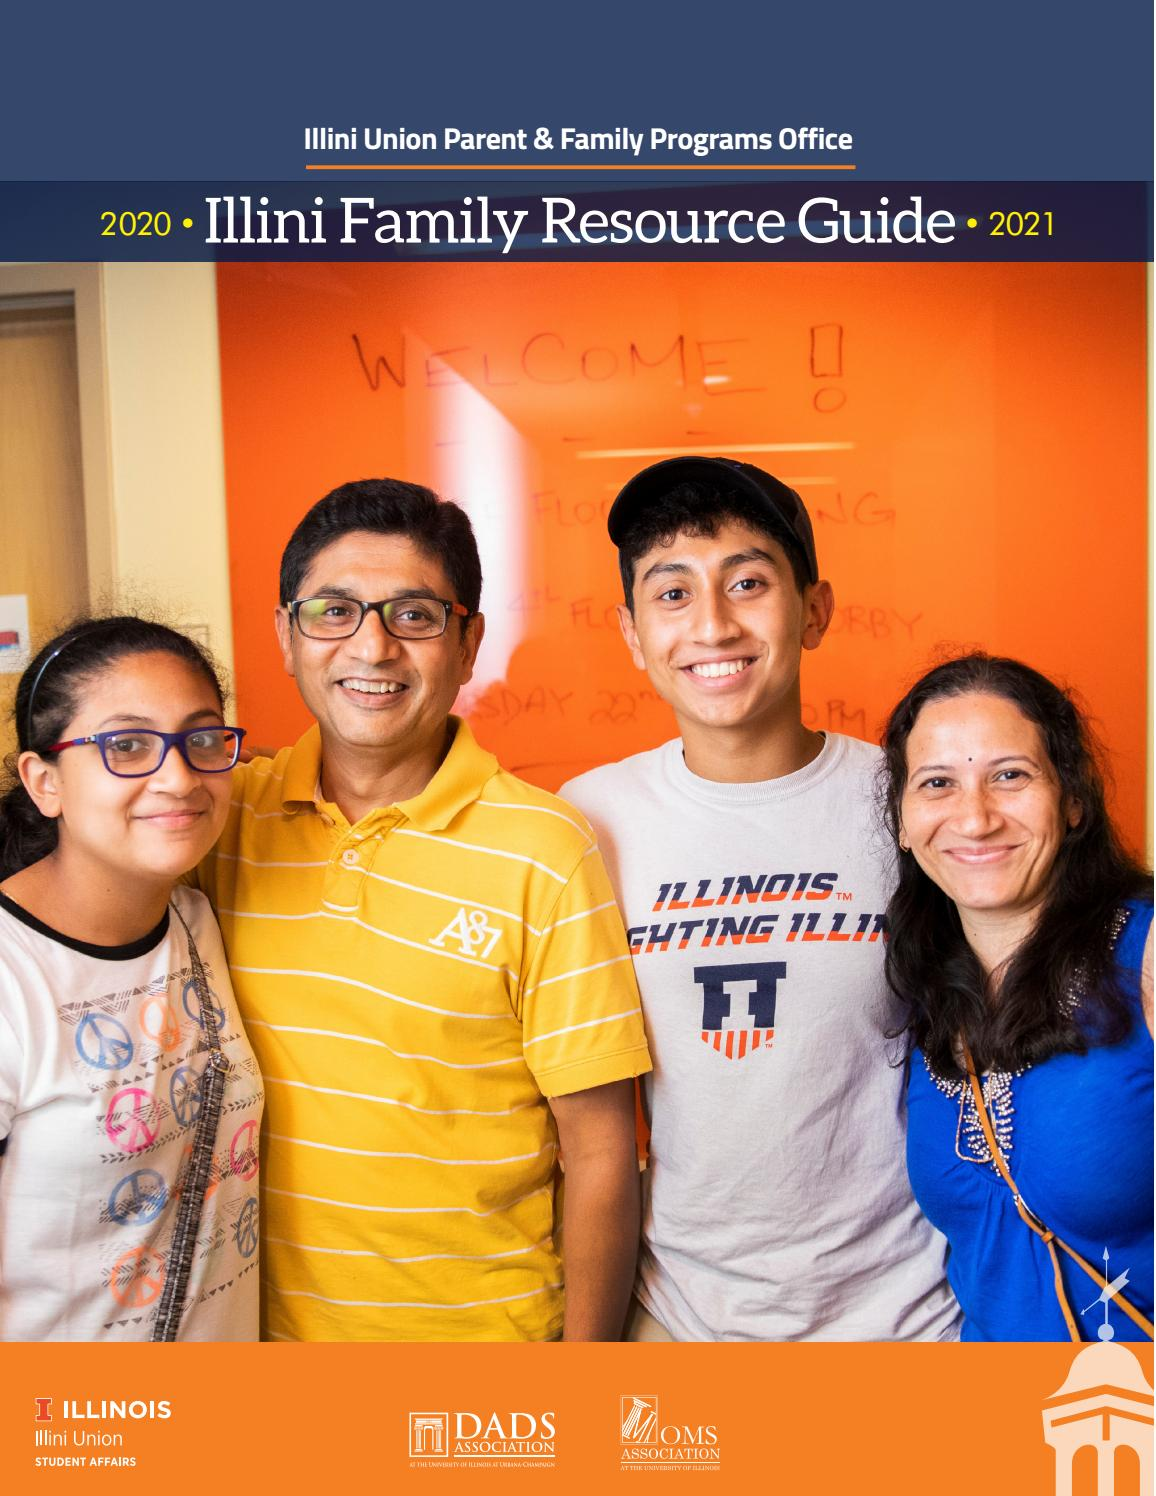 Uiuc 2021 Fall Calendar University of Illinois 2020 2021 Parent and Family Programs Guide